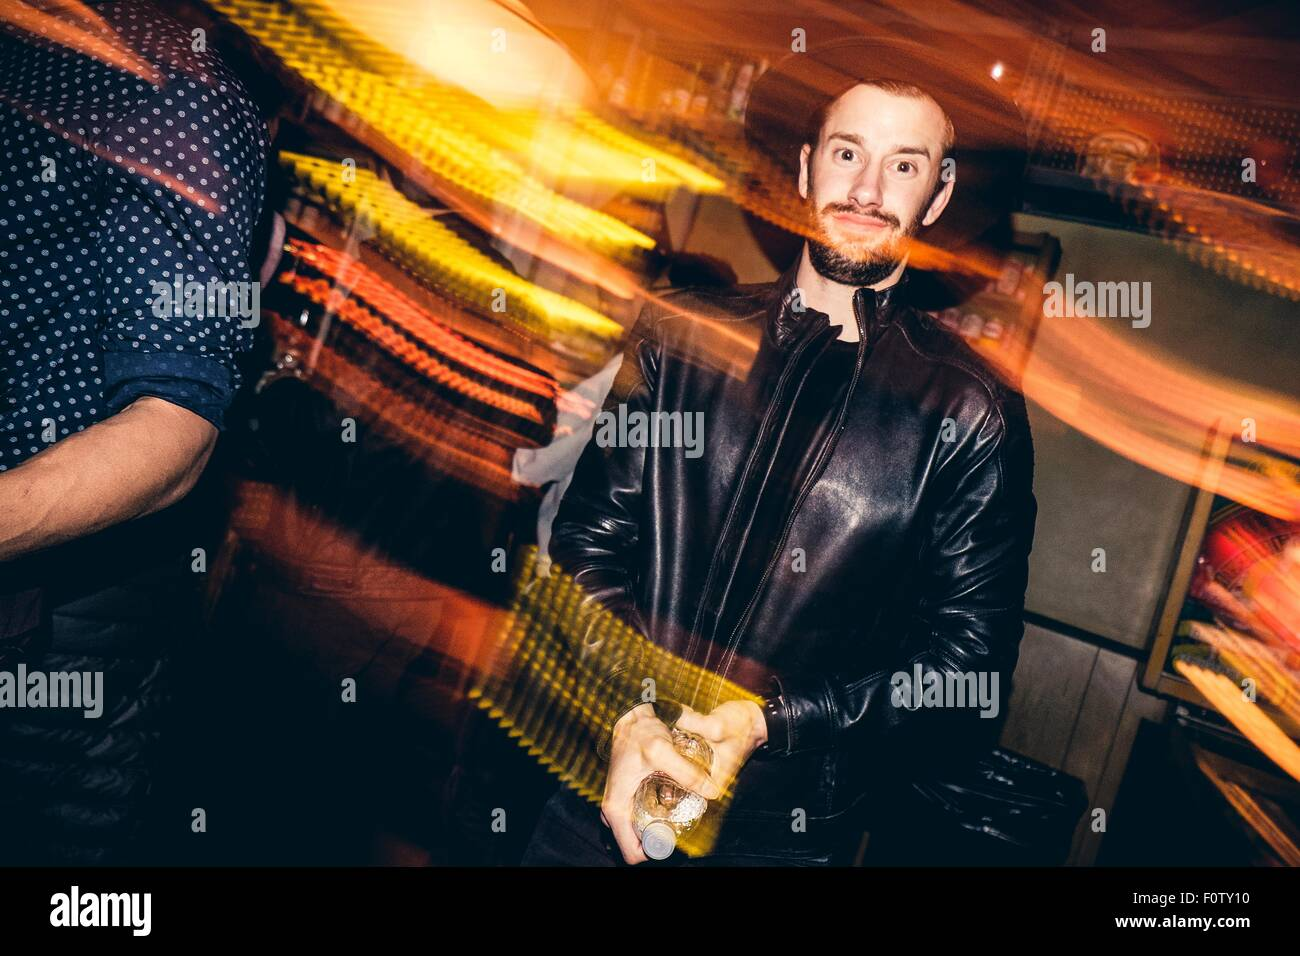 Portrait of young man in bar, blurred motion - Stock Image